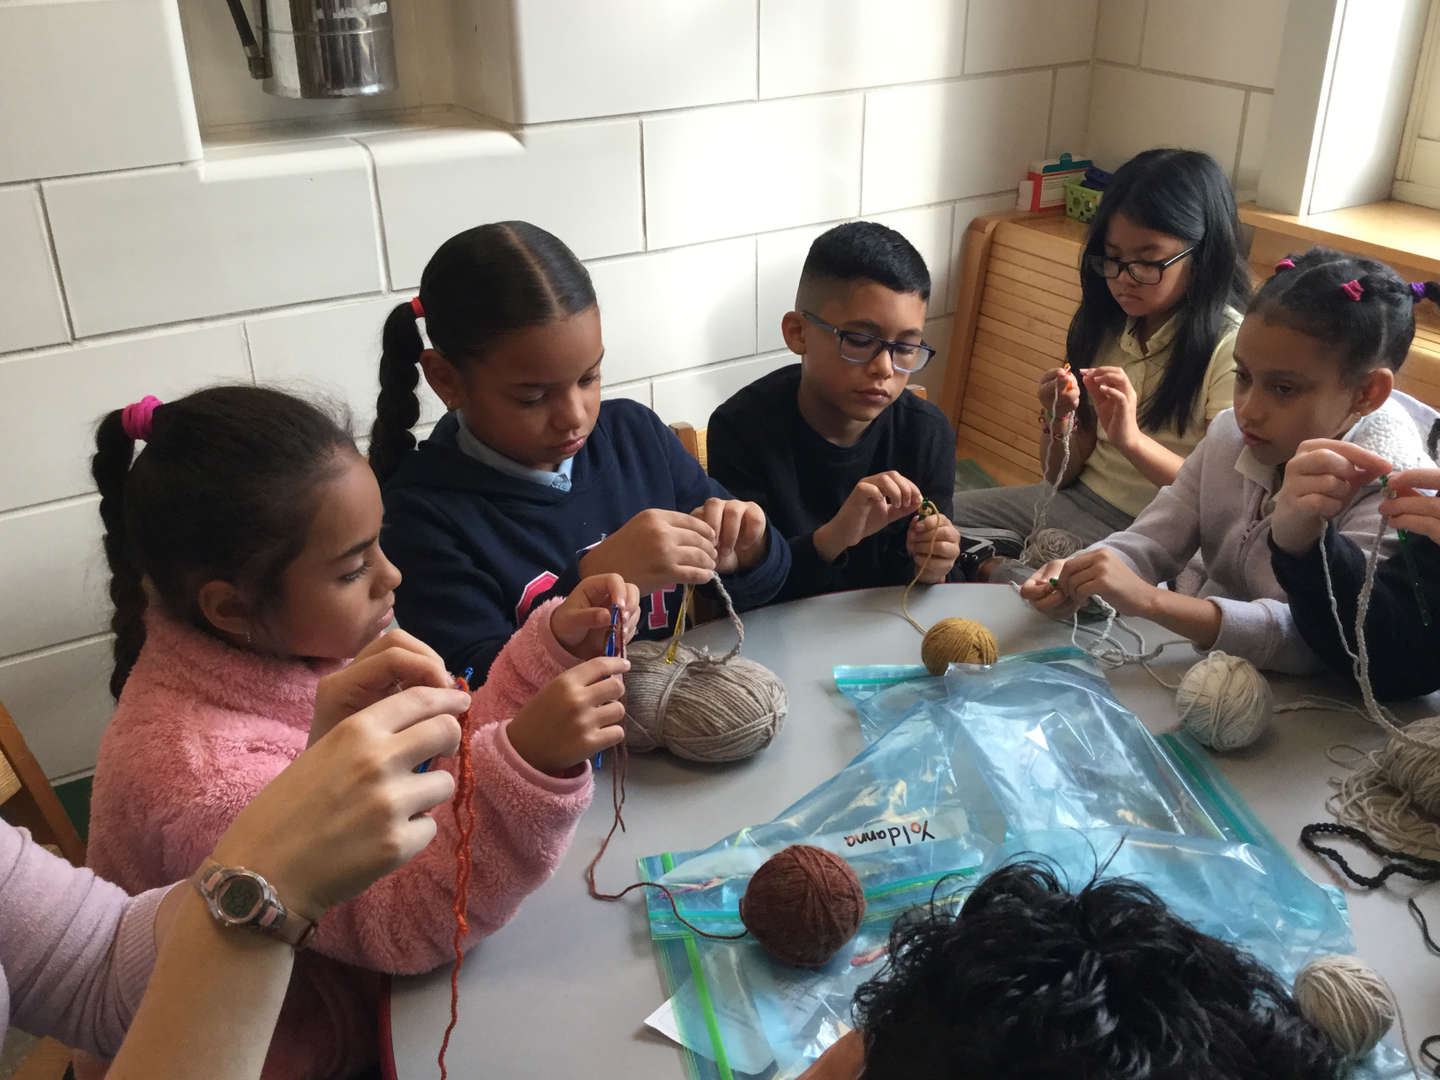 Students knit with yarn